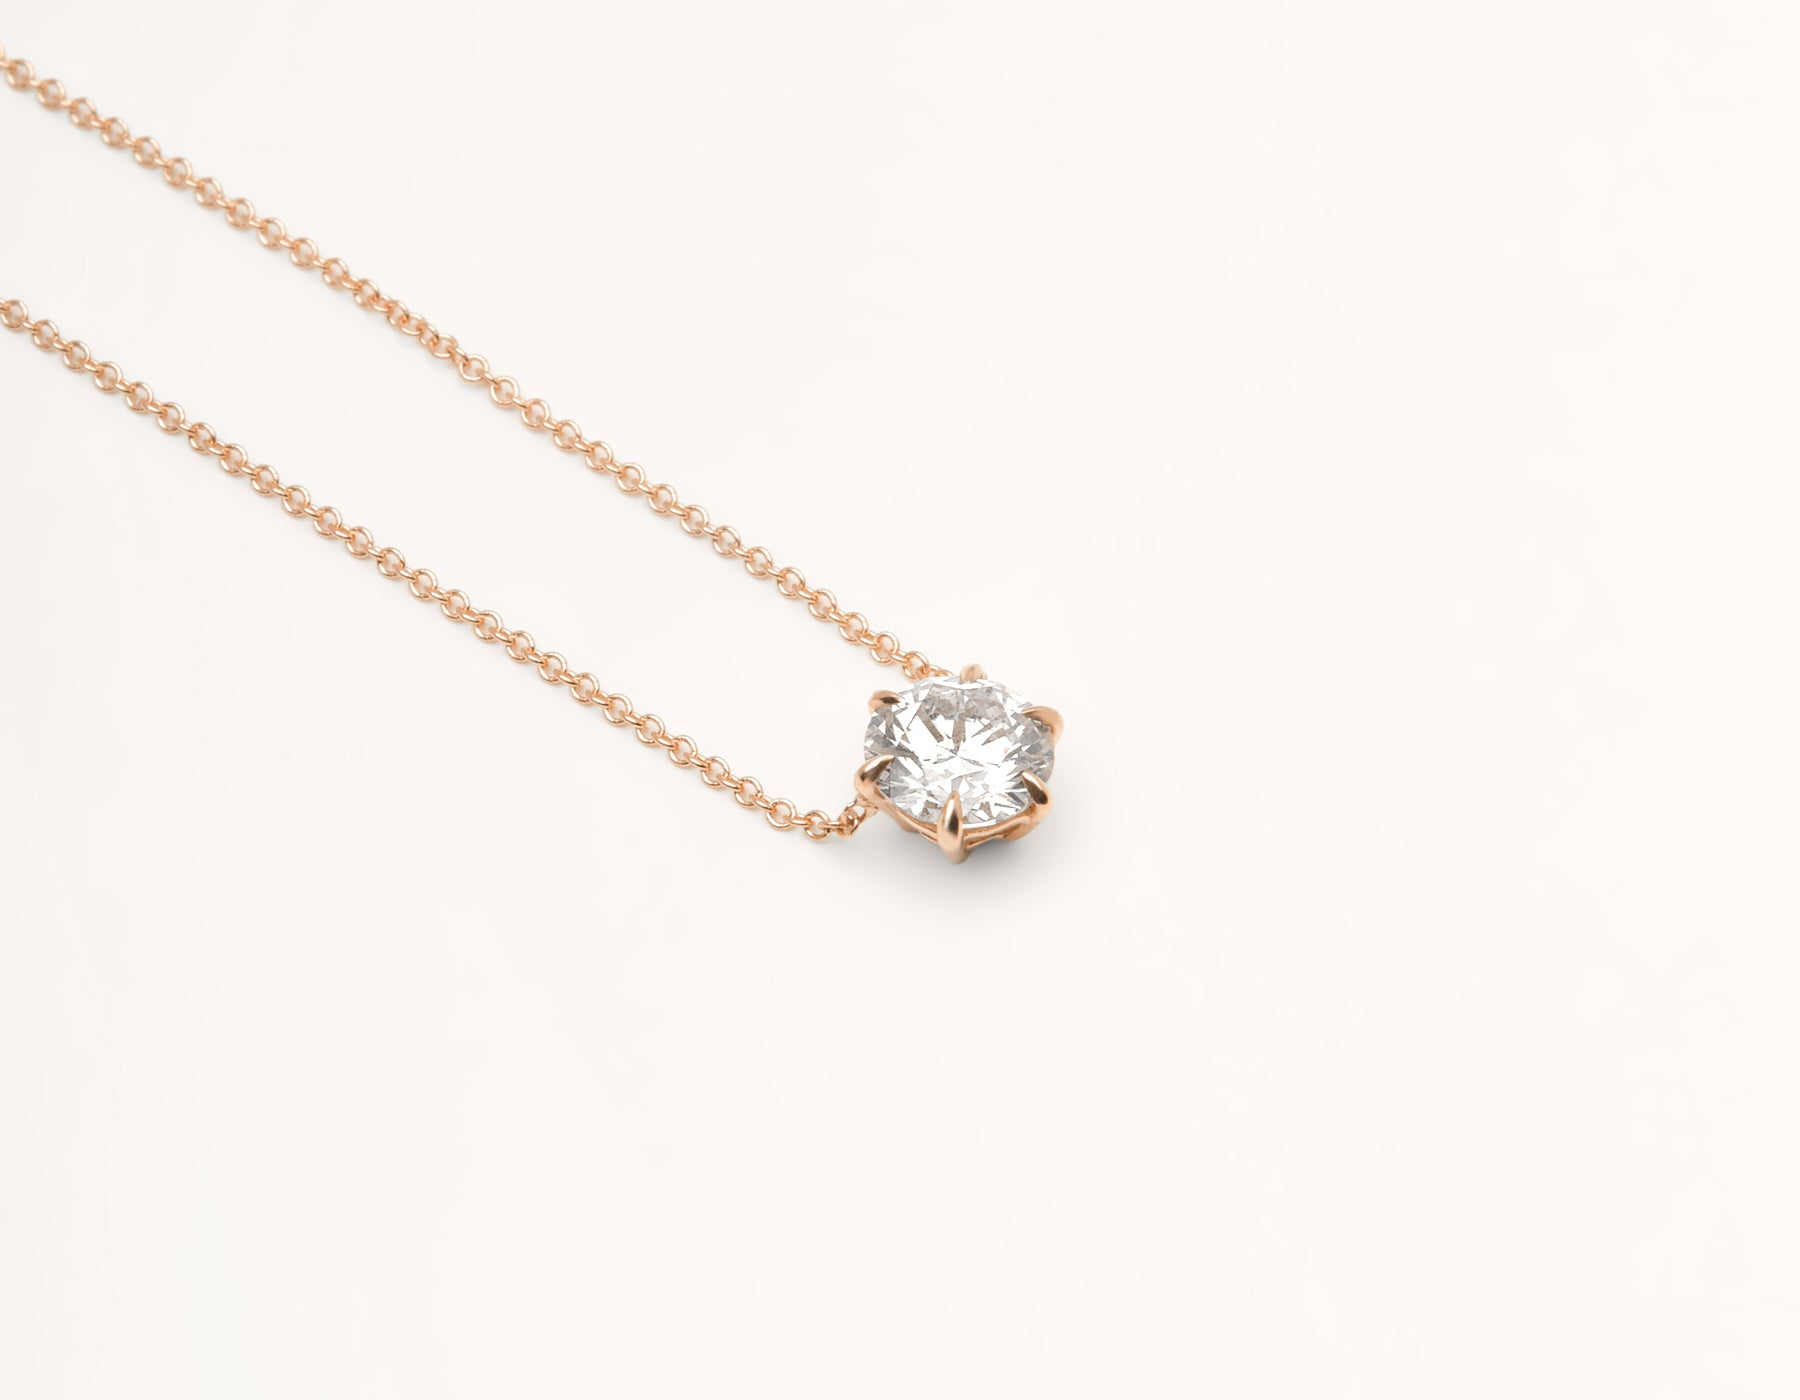 Classic minimalist 18k solid gold 1.0 carat Round Brilliant Cut Diamond Necklace on delicate chain Vrai & Oro, 18K Rose Gold